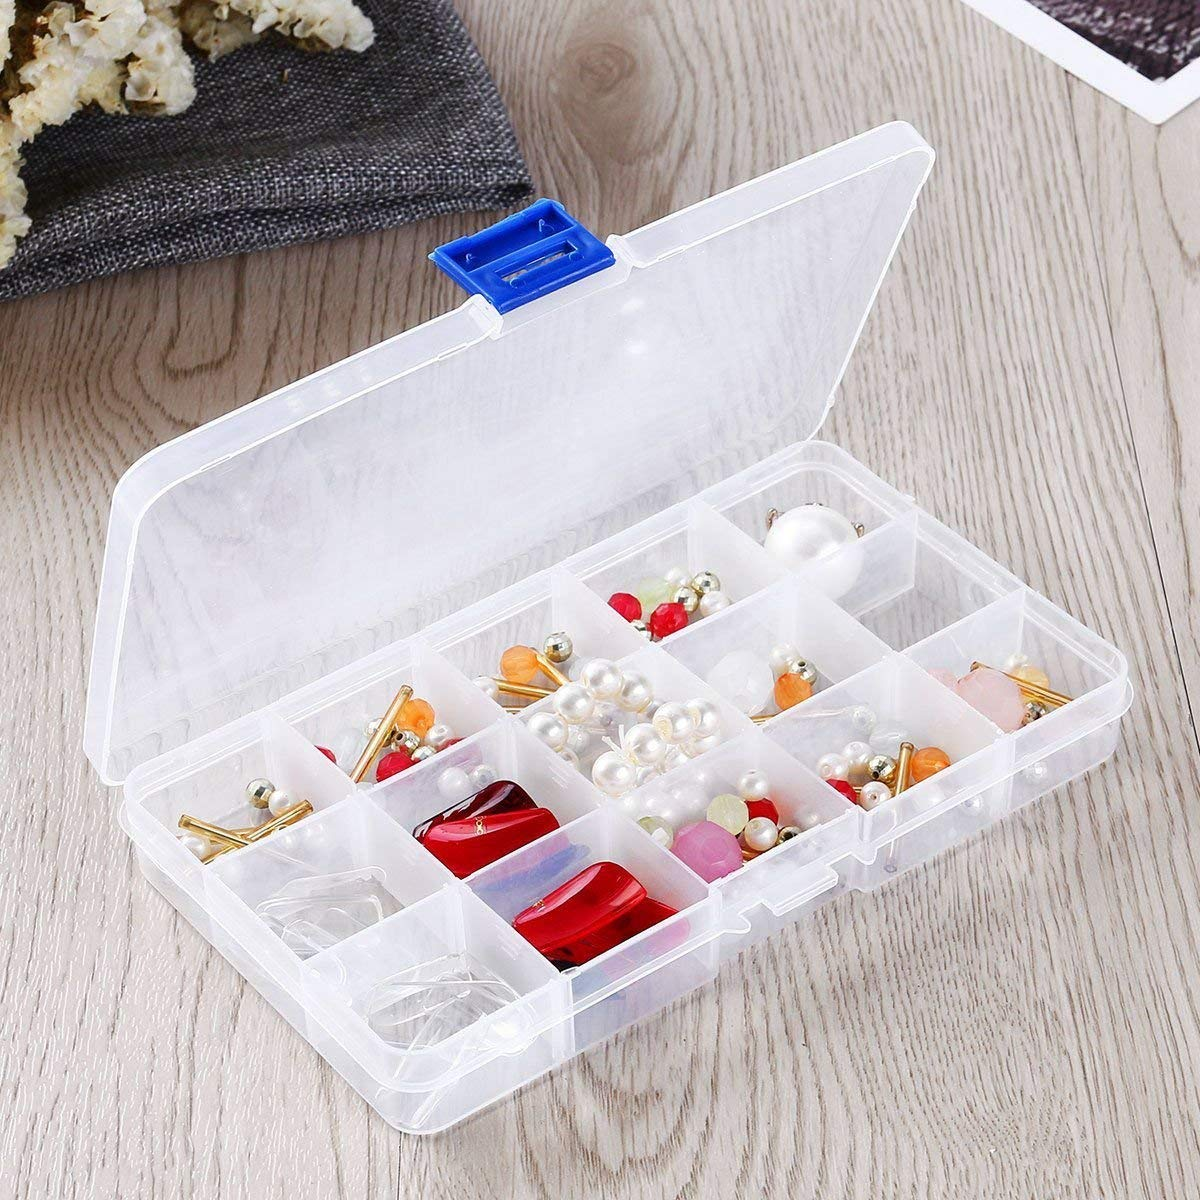 Plastic Organizer for Jewelry, Jewelry Plastic Box Organizer with Dividers, 4 Pcs